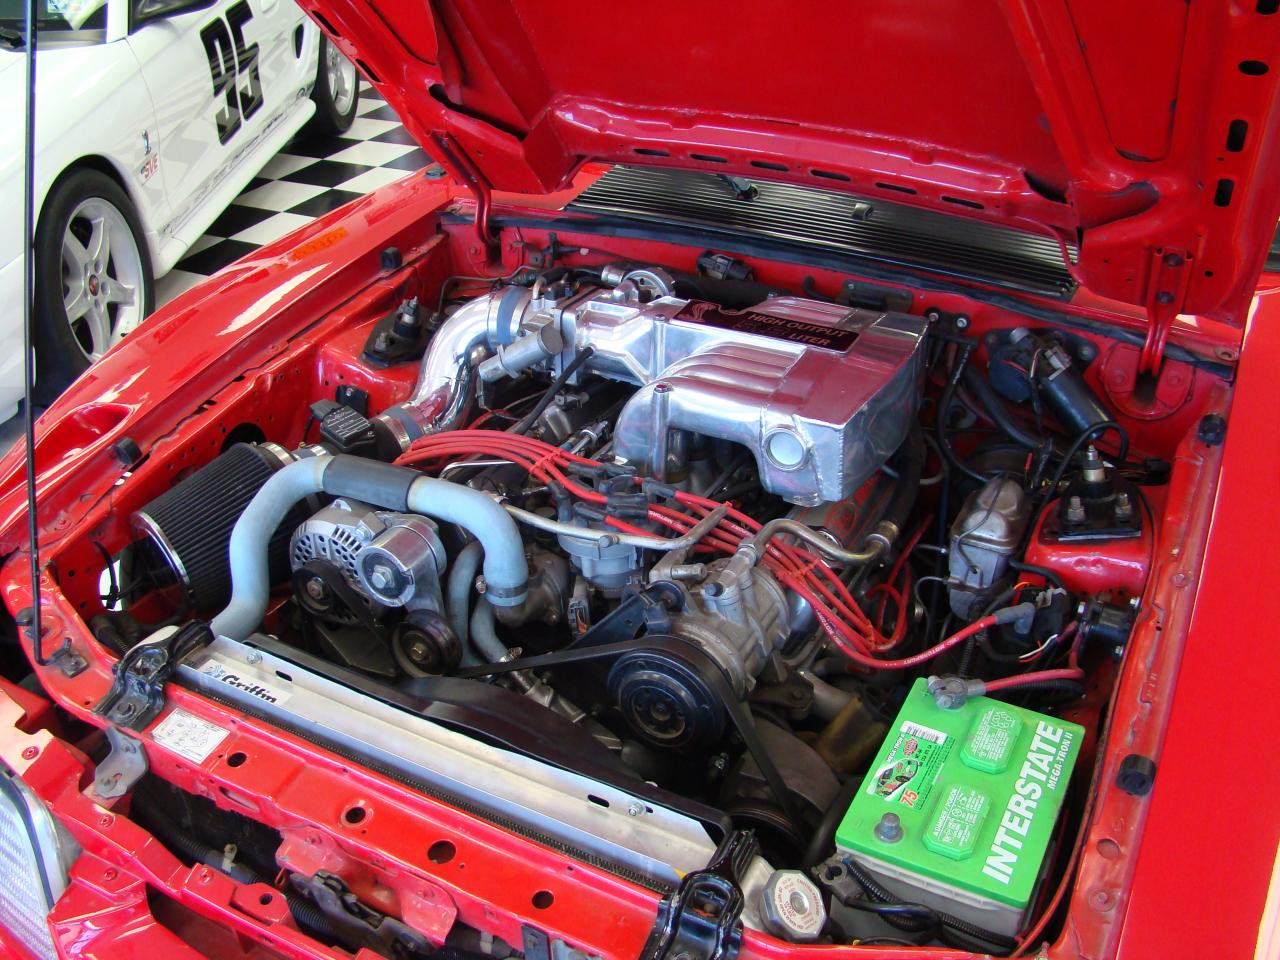 JBA Team Dominator GTA 5.8L Engine Bay